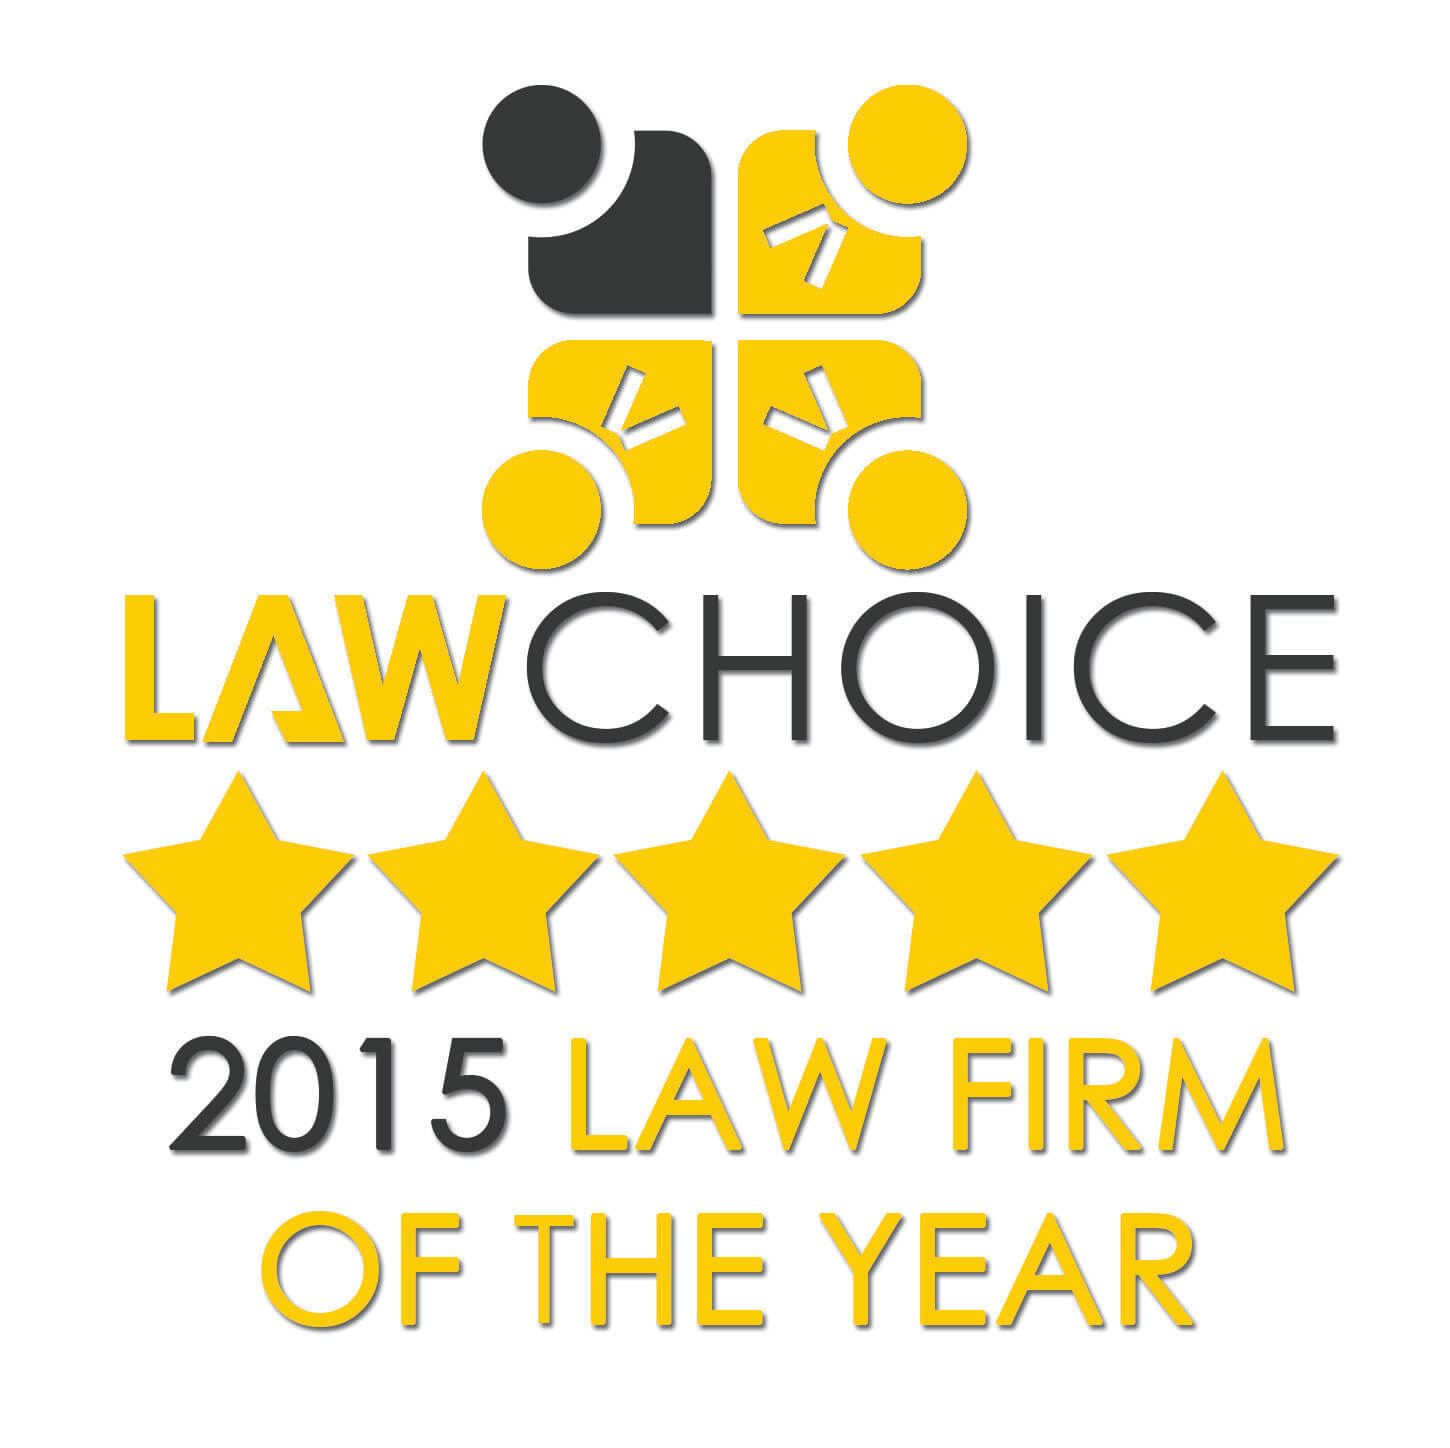 Who will win Lawchoice's law firm of the year award?